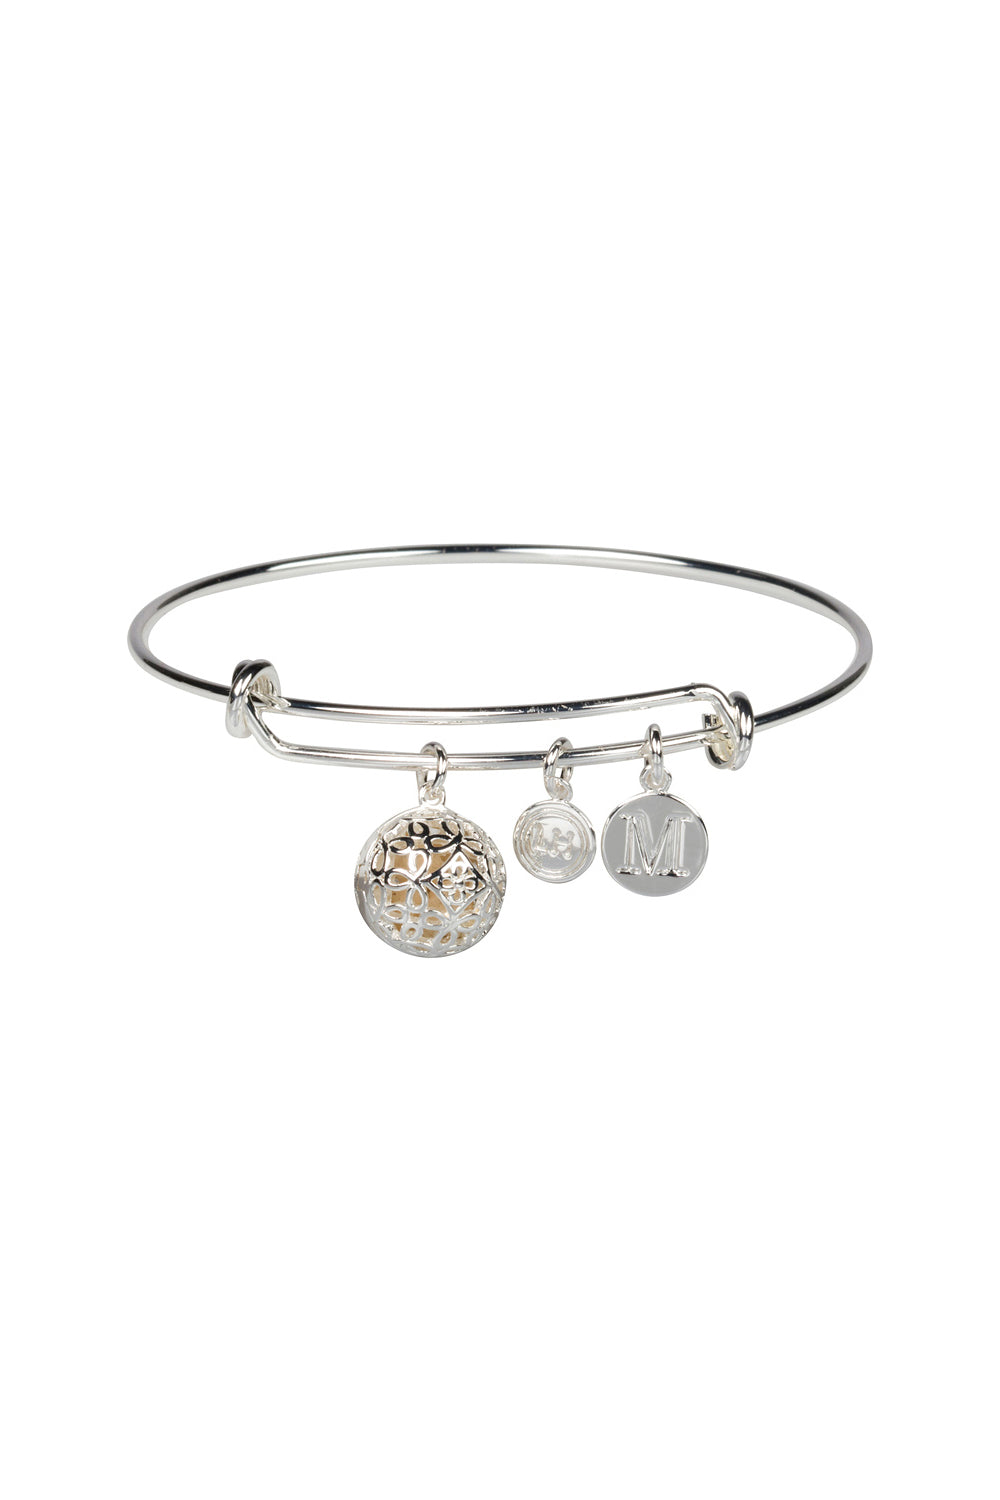 """M"" Initial Fragrance Bangle with Silver Tone Charm"